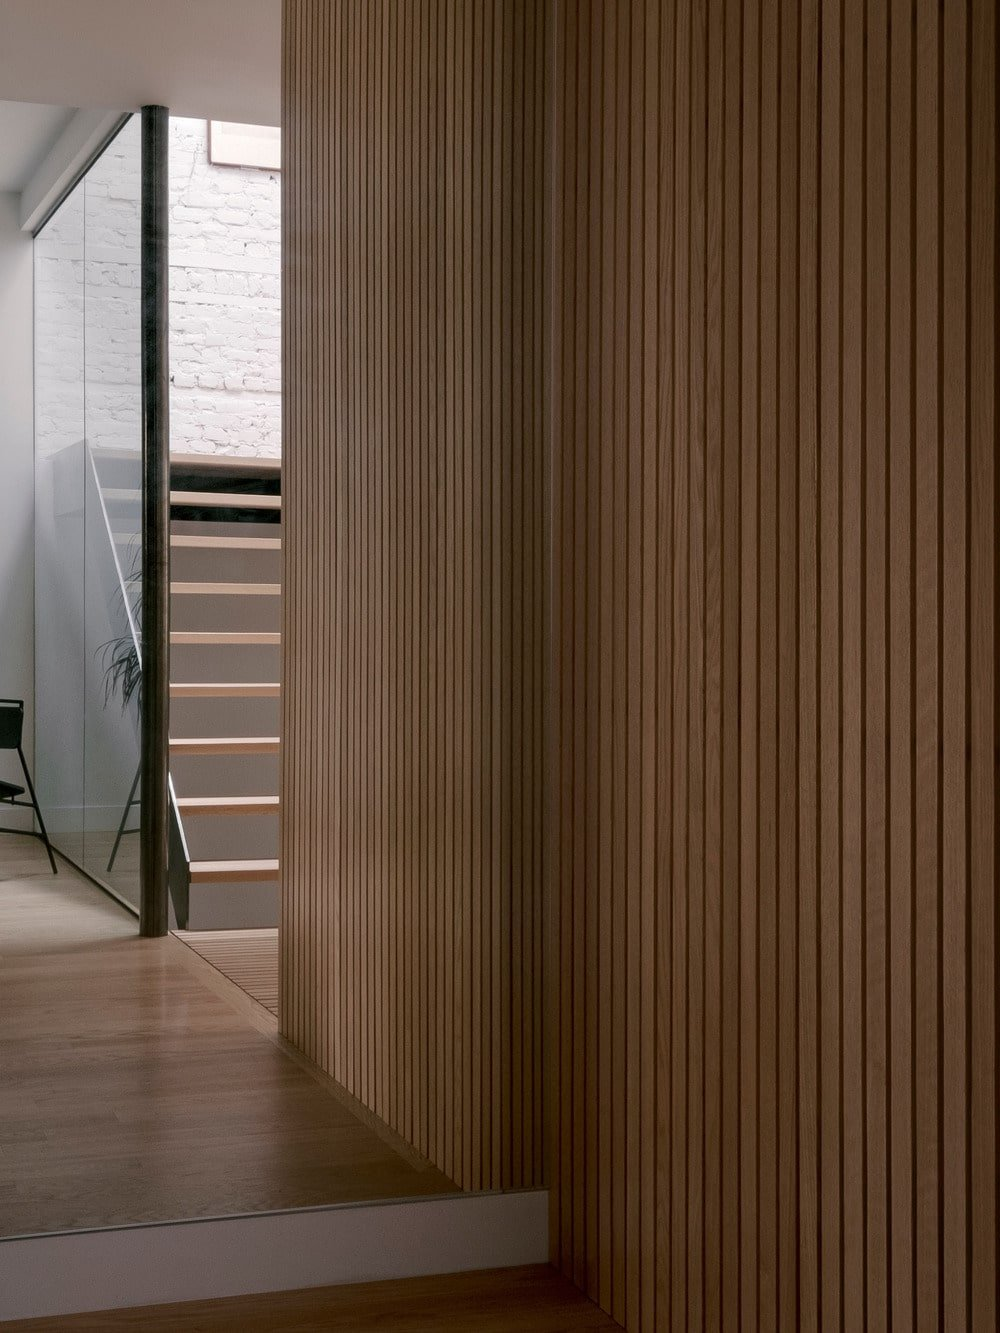 This is a closer look at the wood slatted panel that pairs well with the hardwood flooring.